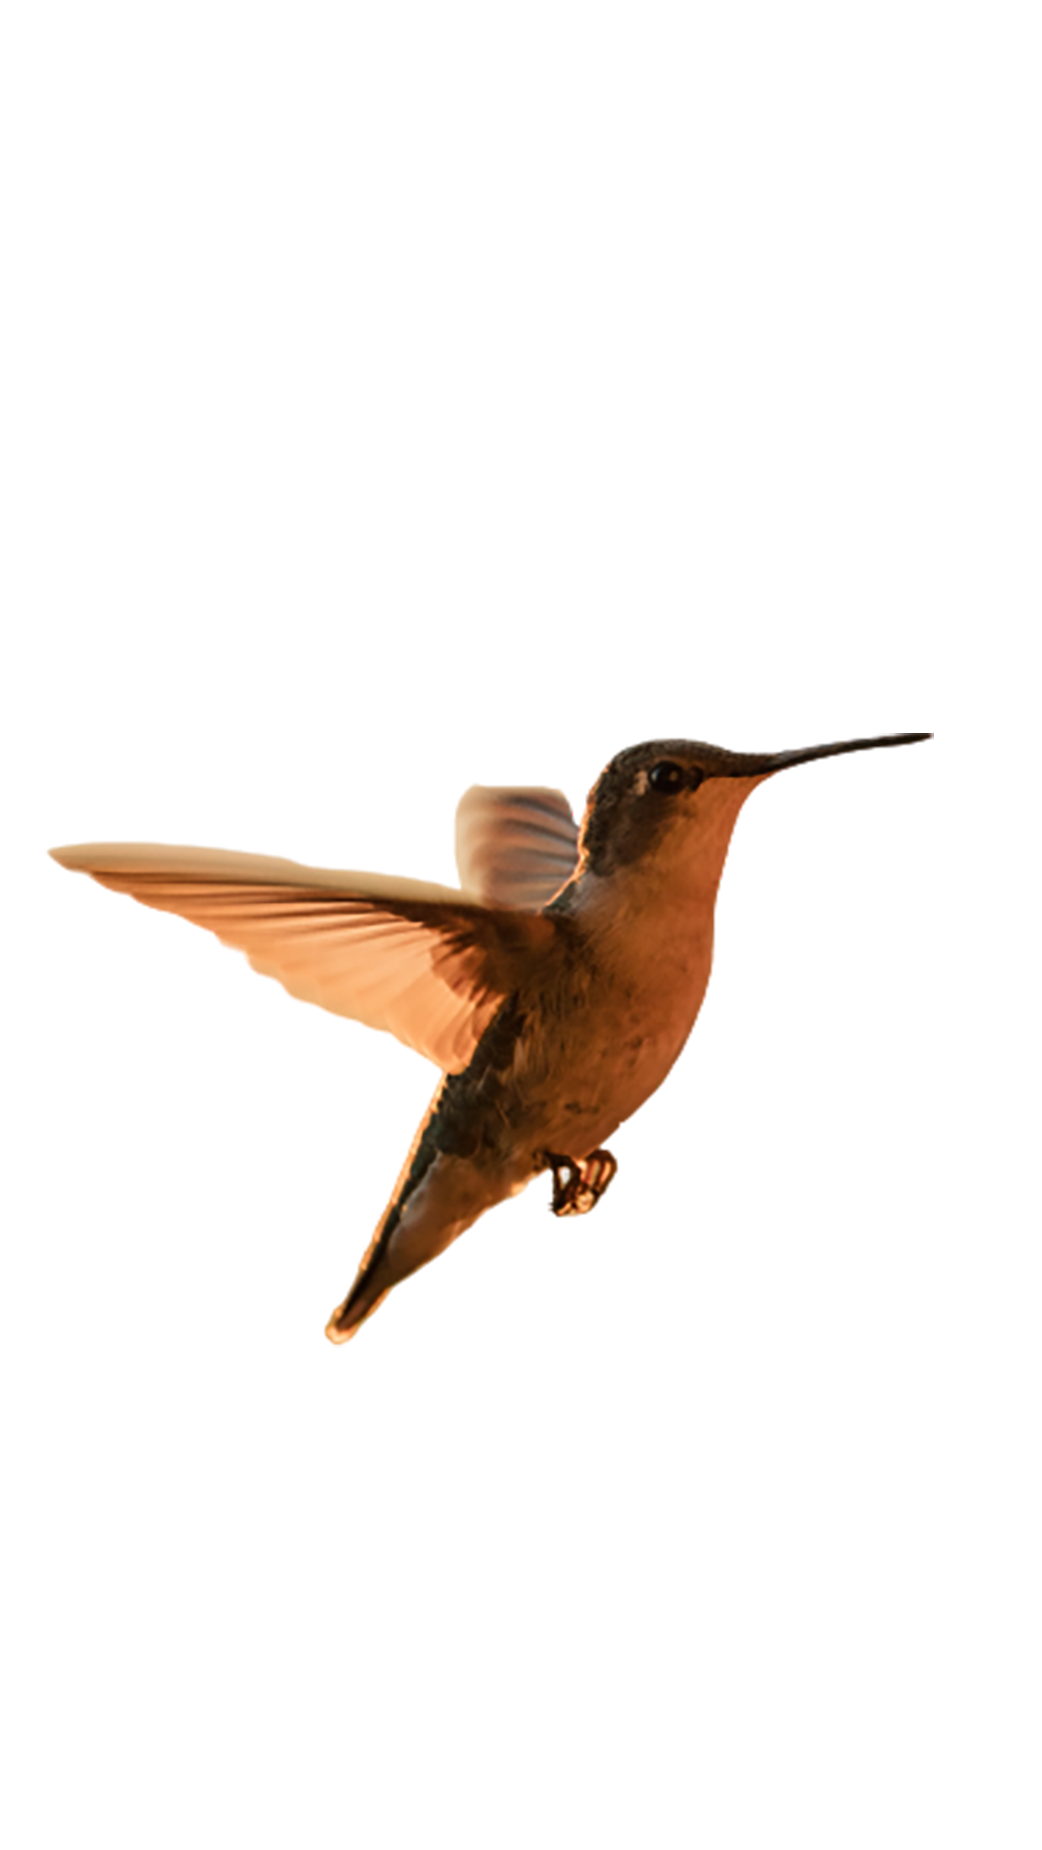 Rufous hummingbird flying transparent background PNG